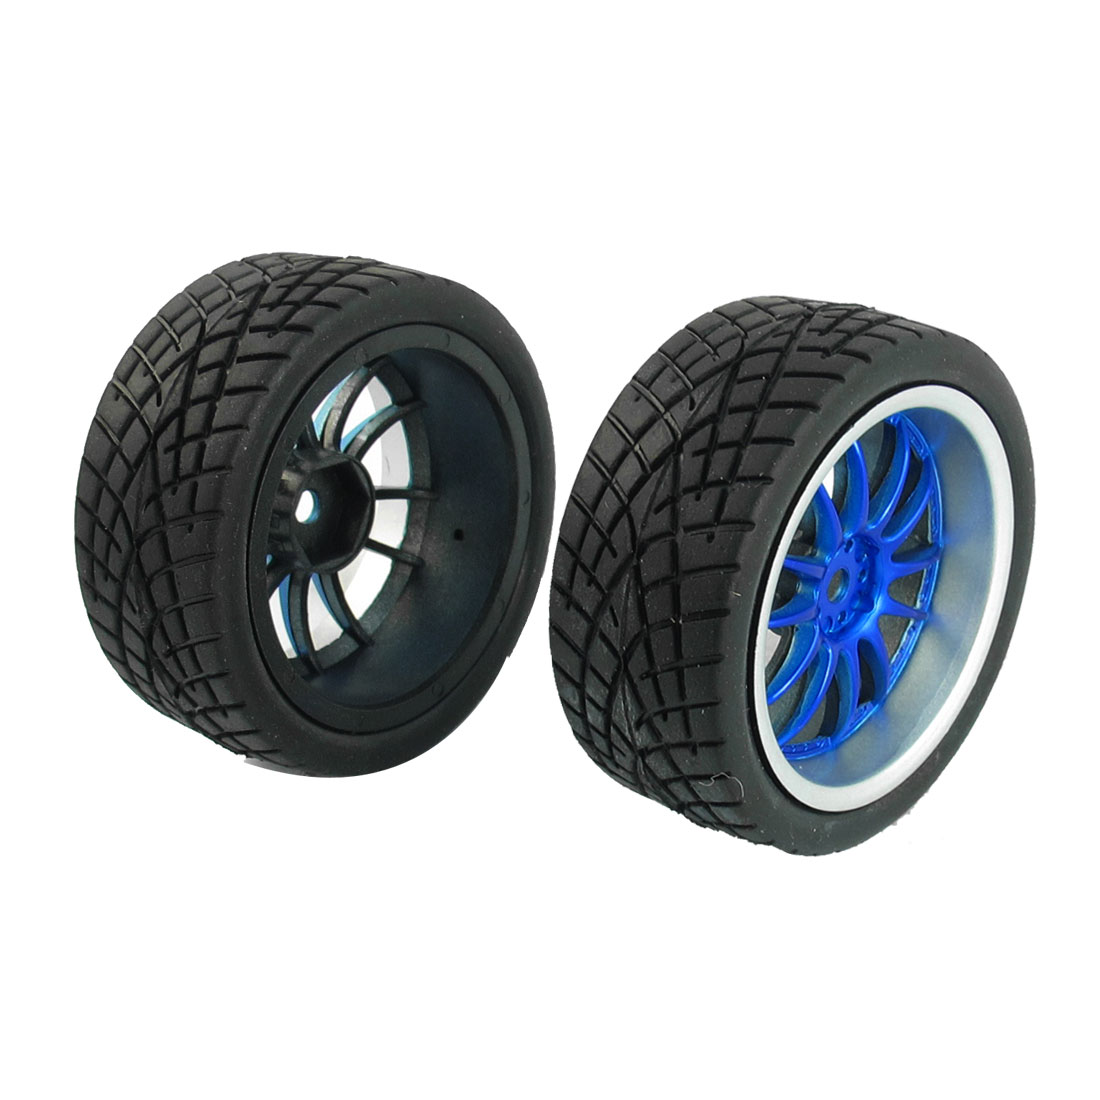 2Pcs Black Blue Wheel Rim Tyre Spare Parts Set for 1/10 Scale RC Buggy Car